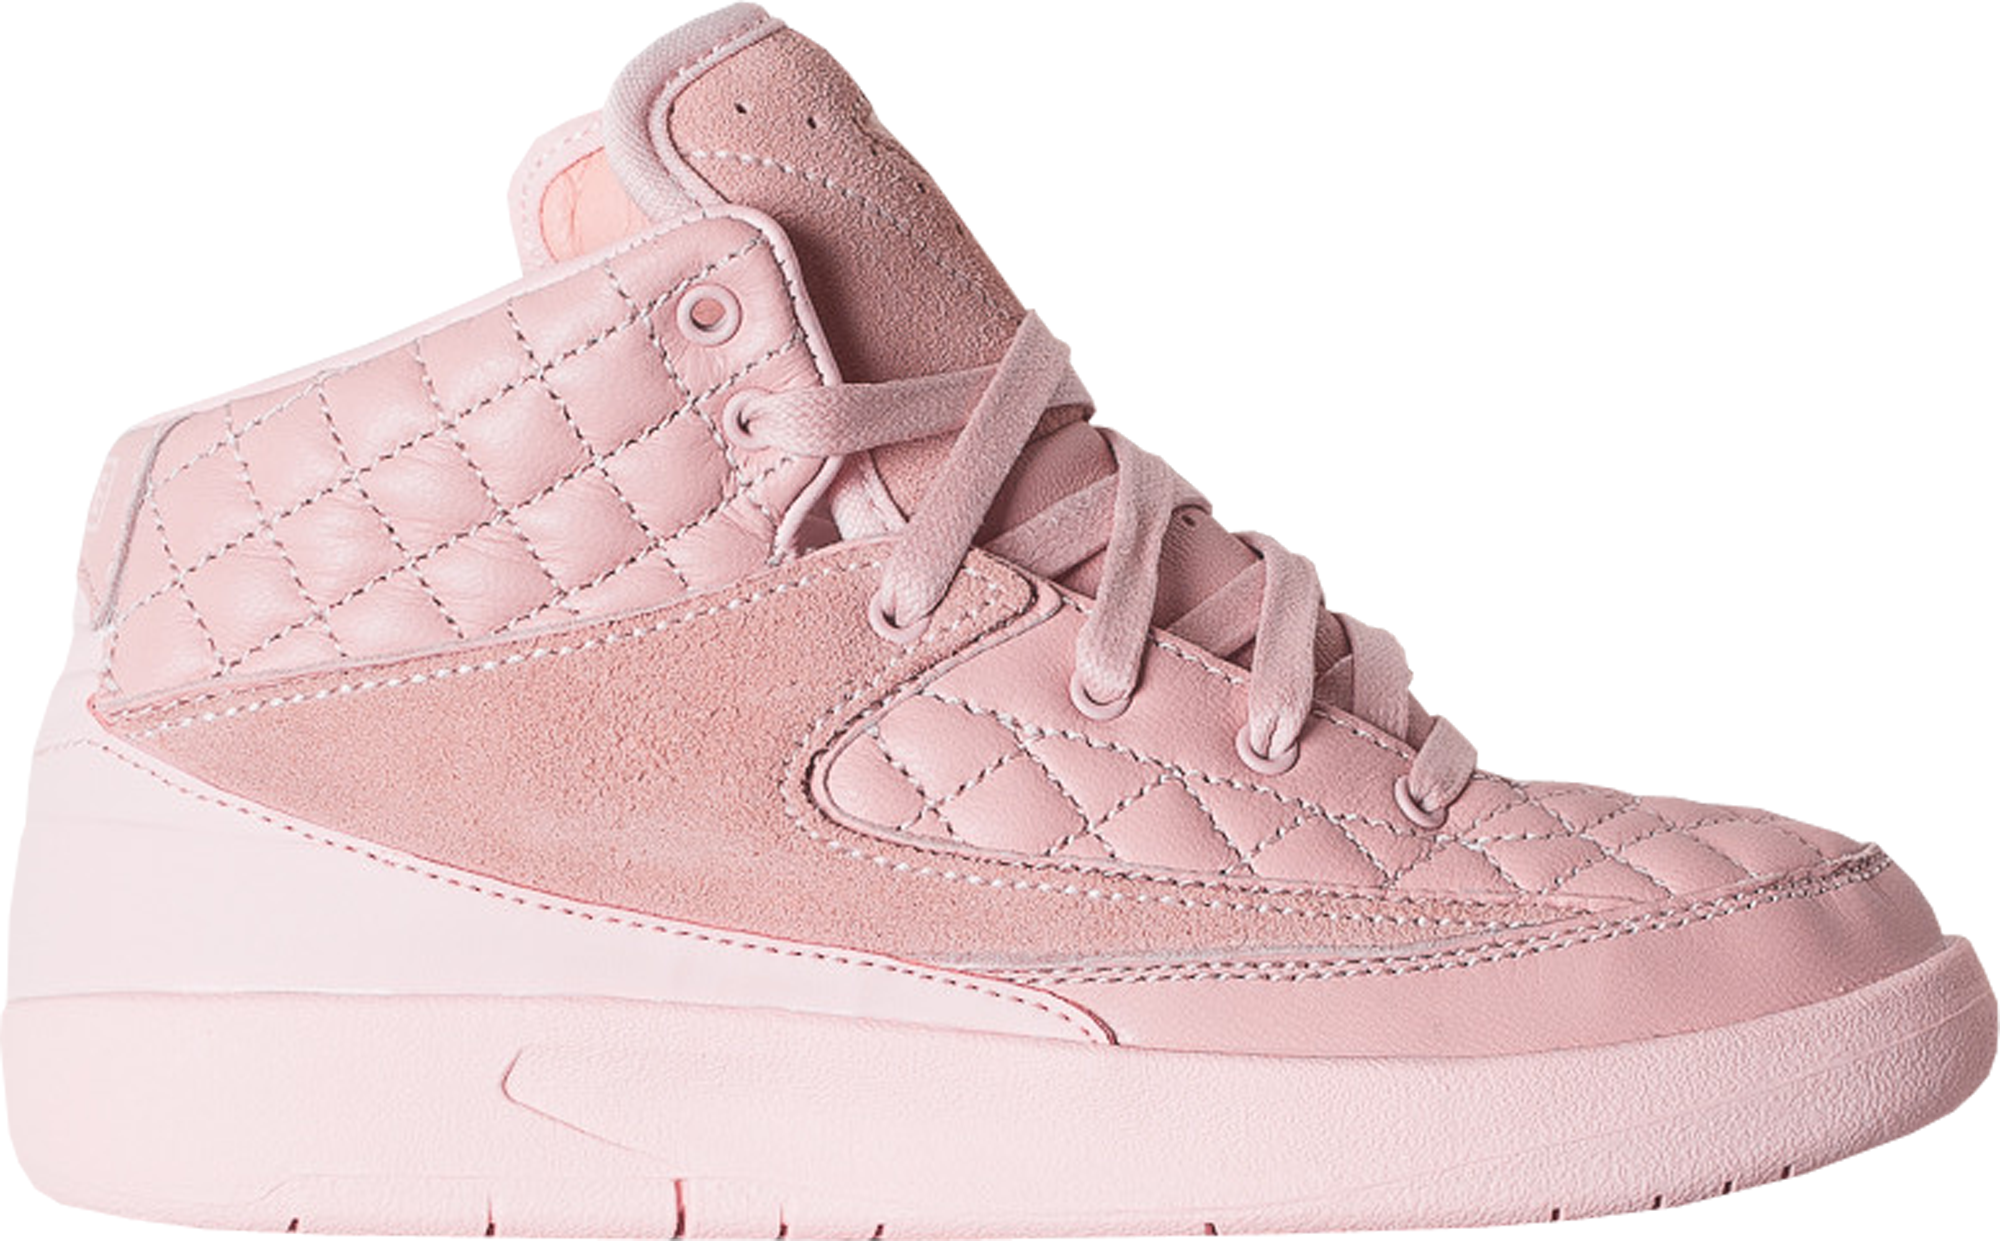 Jordan 2 Retro Just Don Arctic Orange (PS)